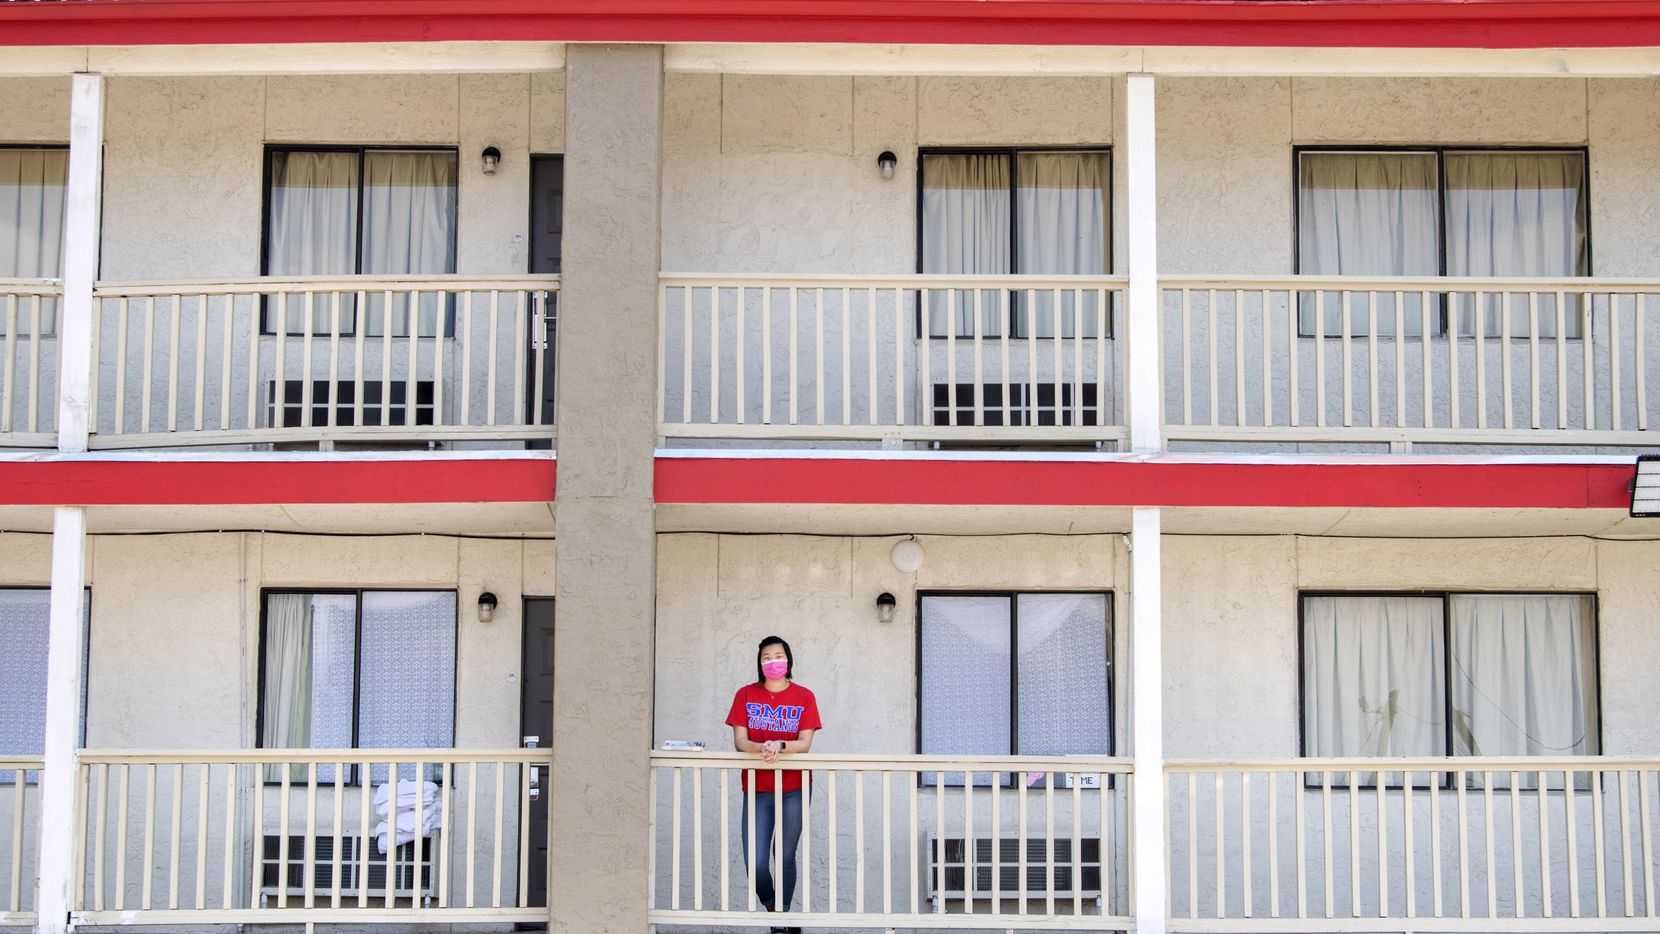 Joie Lew, an 18-year-old freshman at SMU, poses for a portrait outside the OYO Hotel suite where she lives with her divorced parents during the coronavirus pandemic.